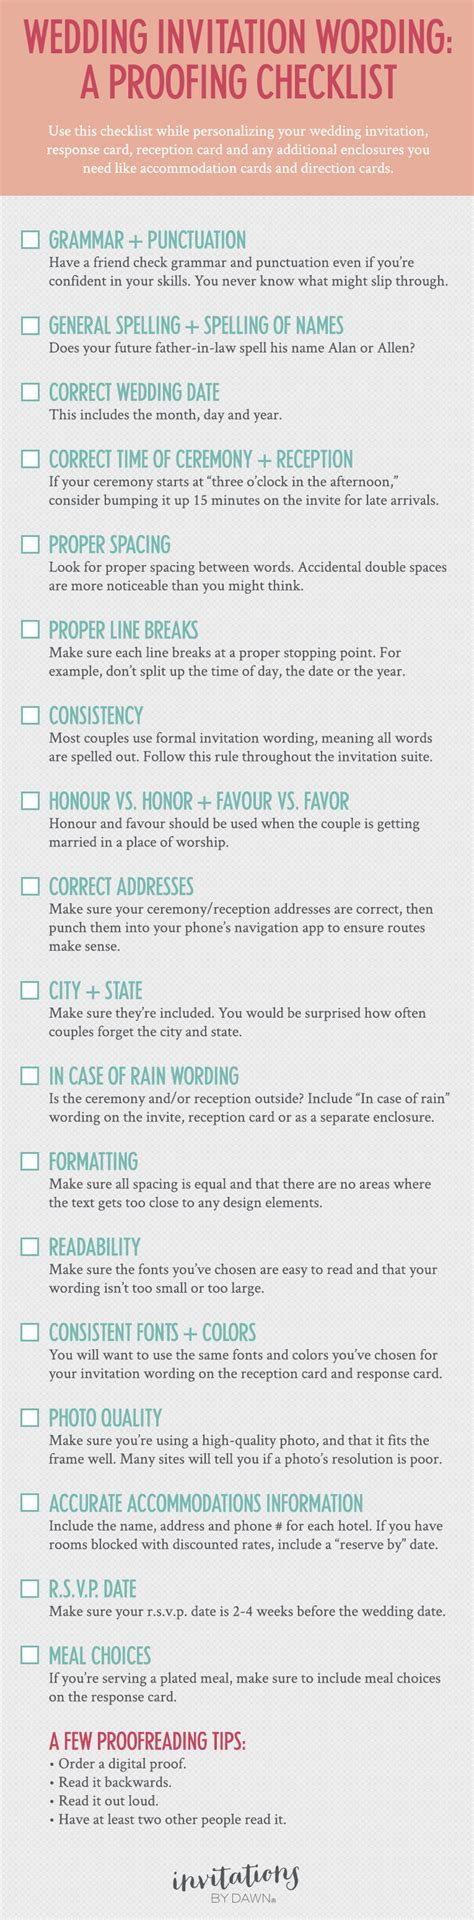 stationery checklist for a wedding a proofing checklist for wedding invitations invitations